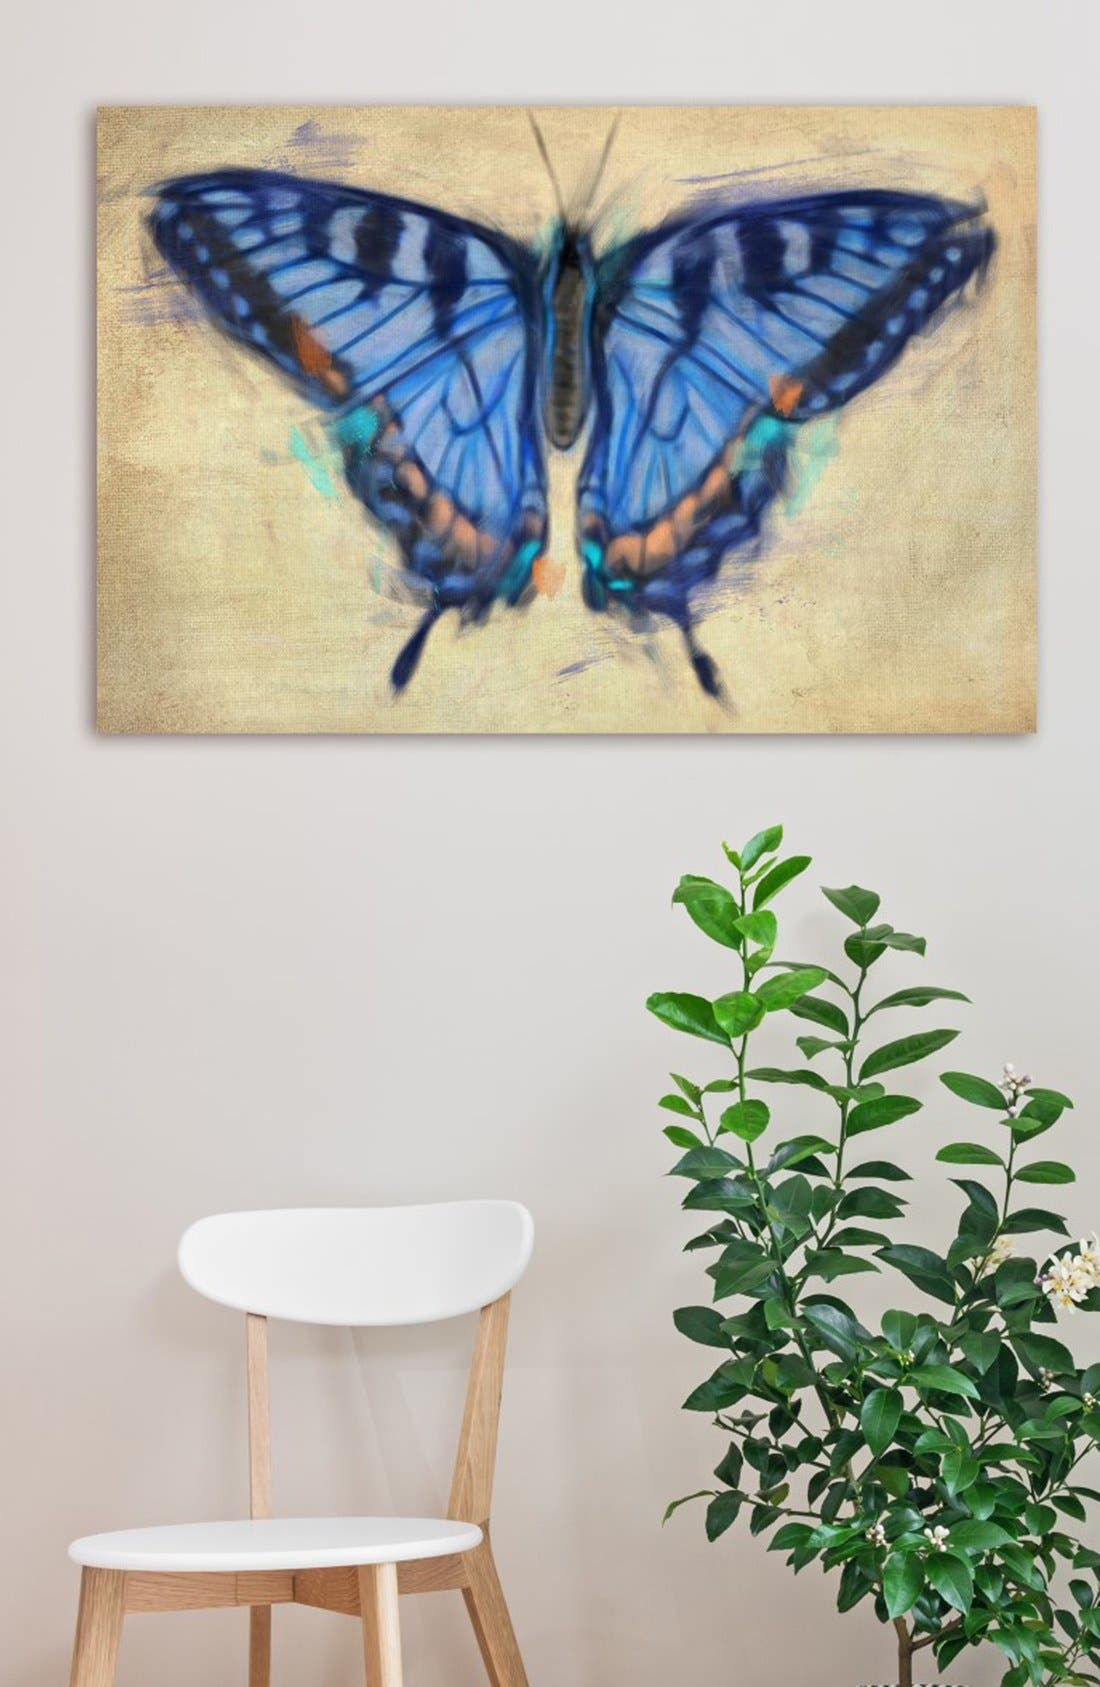 'Blissful Butterfly' Canvas Wall Art,                             Alternate thumbnail 2, color,                             400